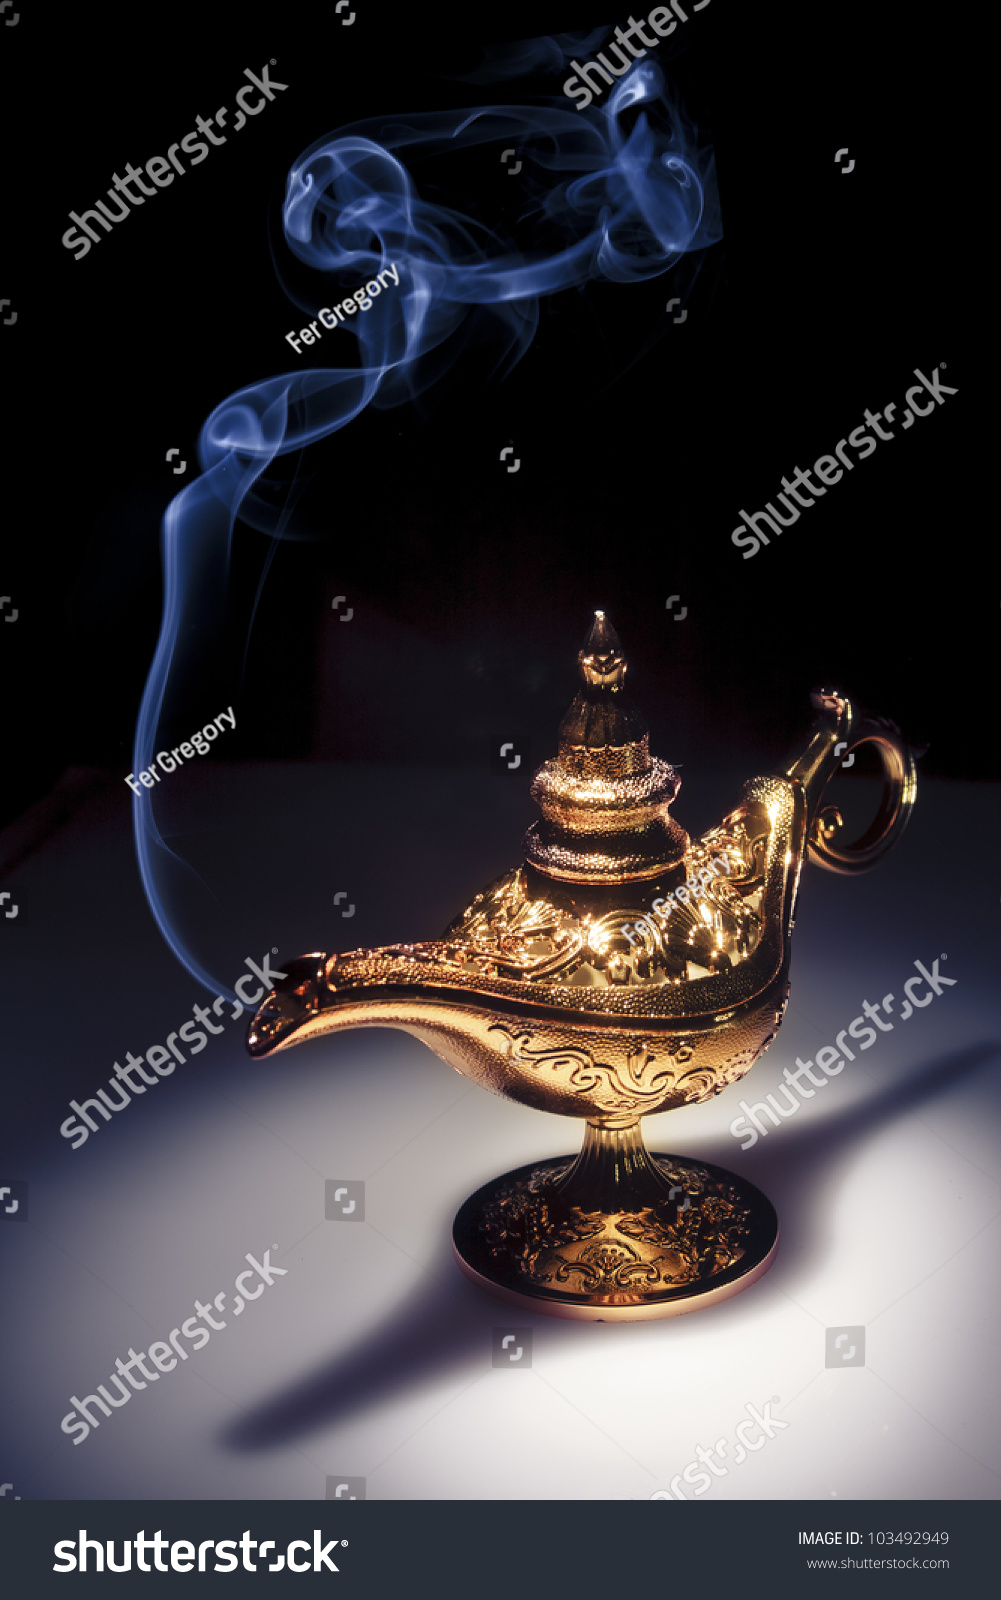 Aladdin Magic Lamp On Black Smoke Stock Photo 103492949 - Shutterstock for Magic Lamp With Smoke  585ifm